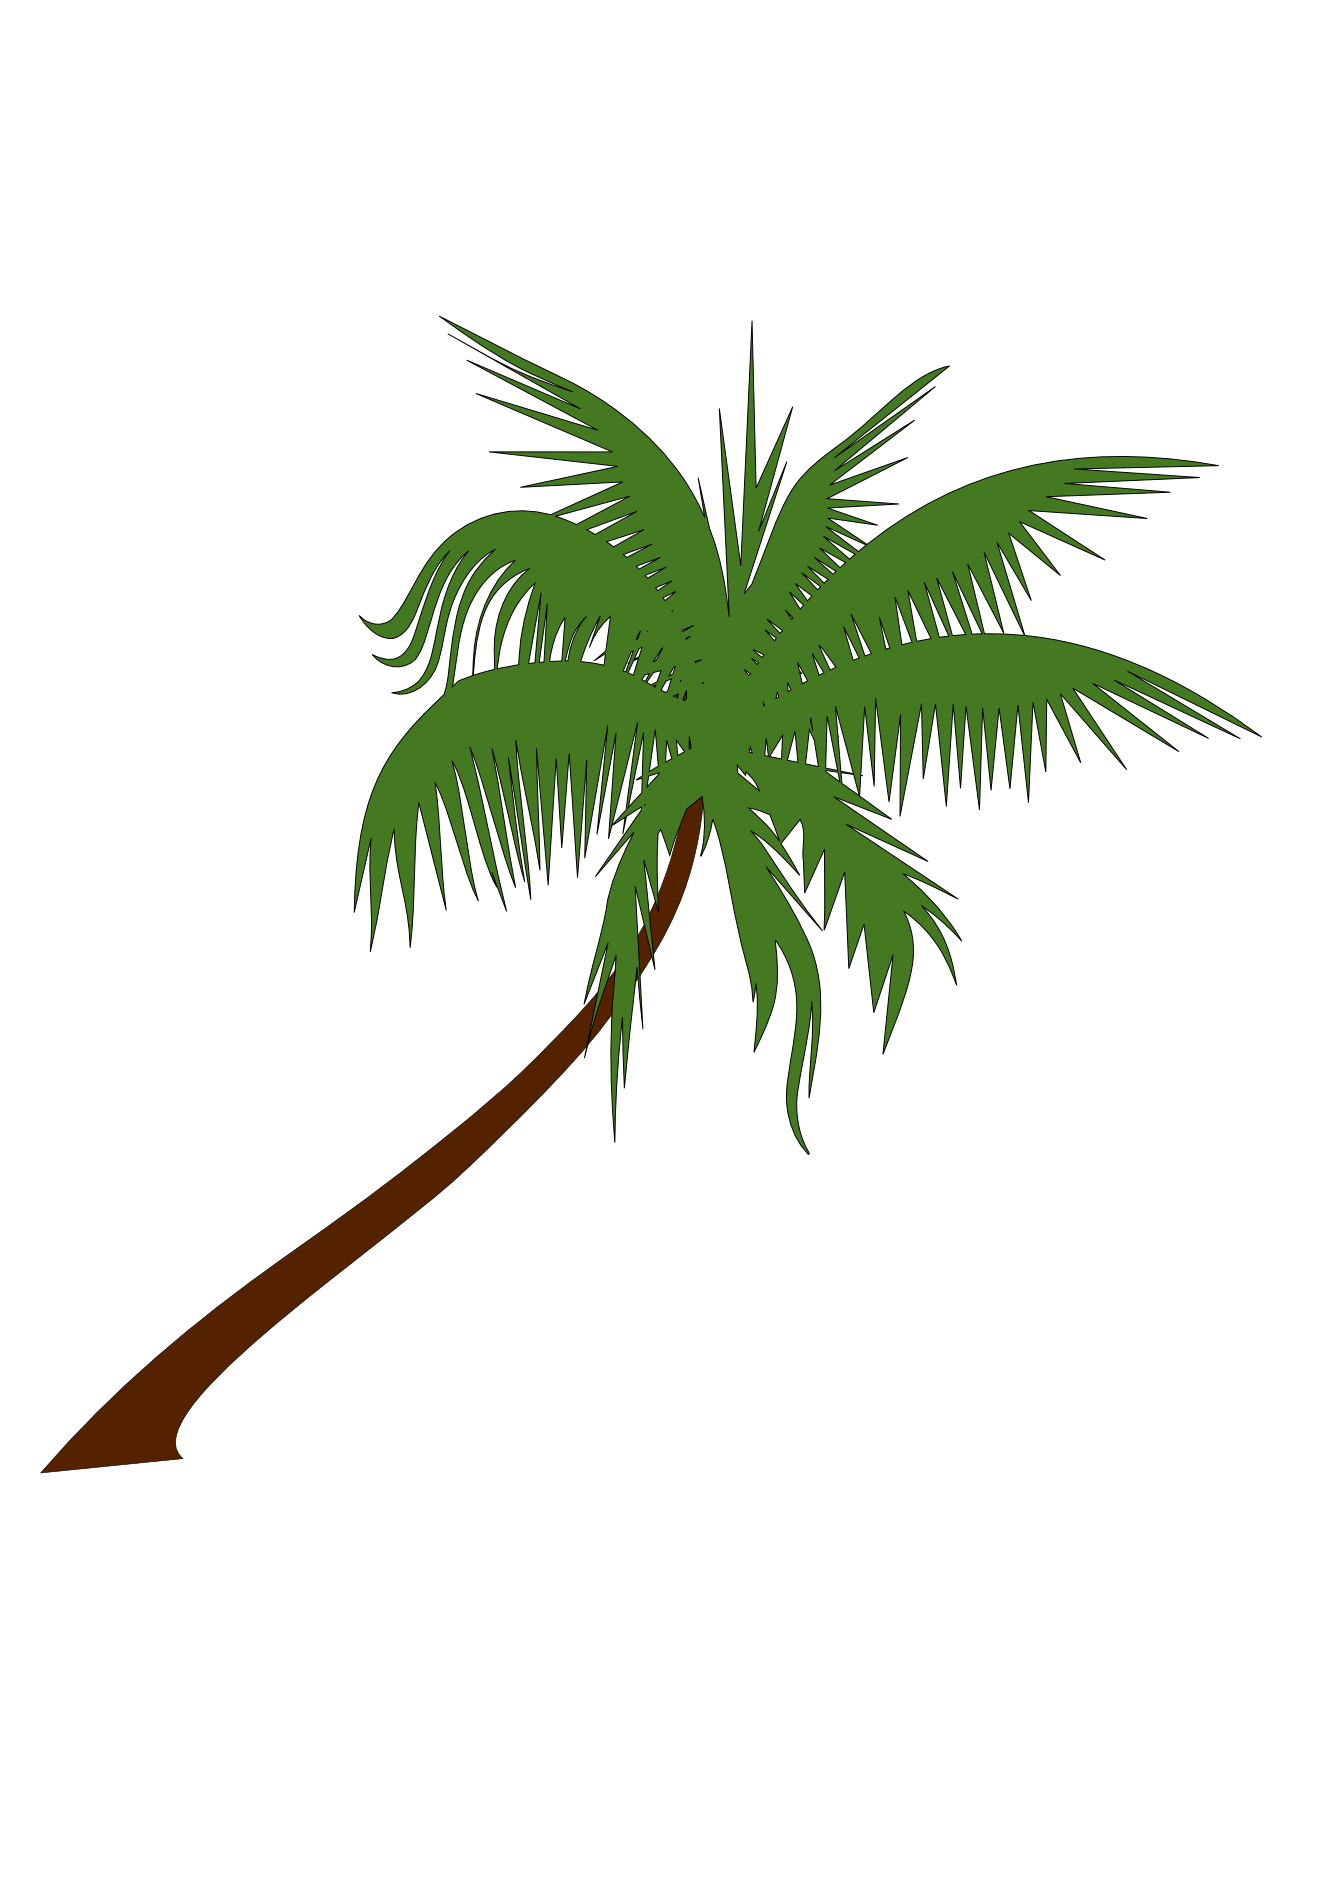 Tree clip art png. Palm clipart single